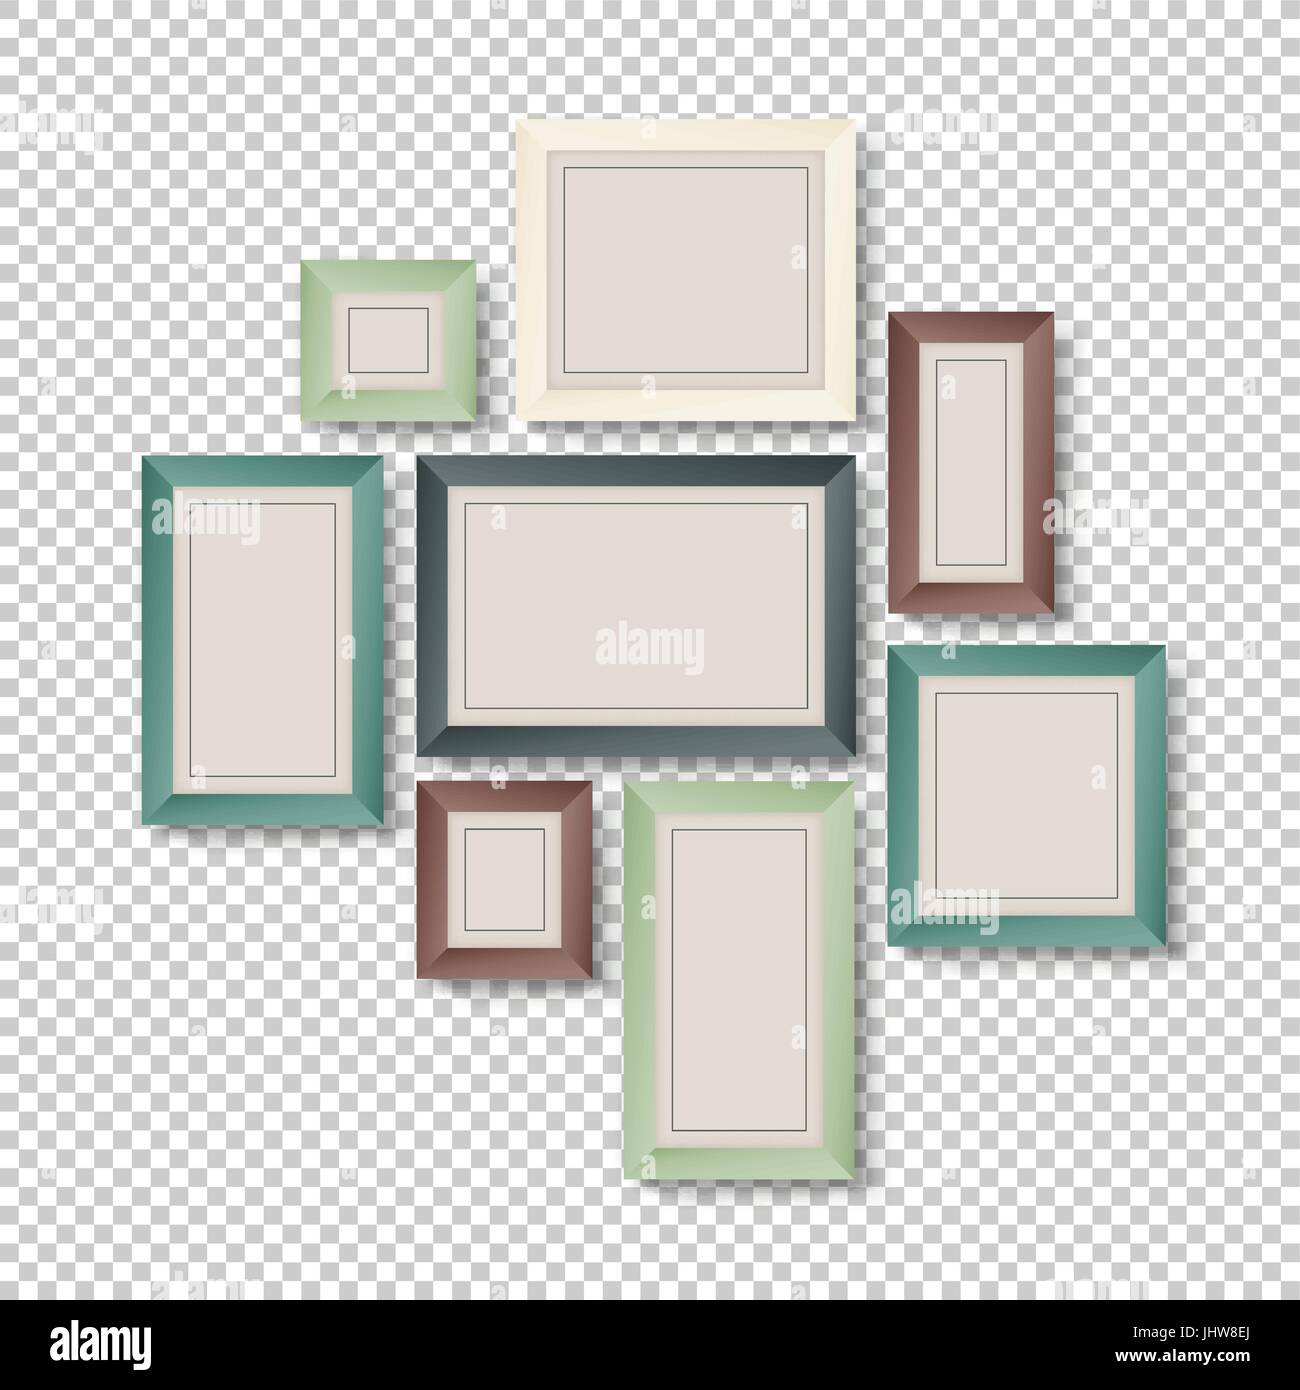 Group of Colorful Frames on Transparent Background Stock Vector Art ...